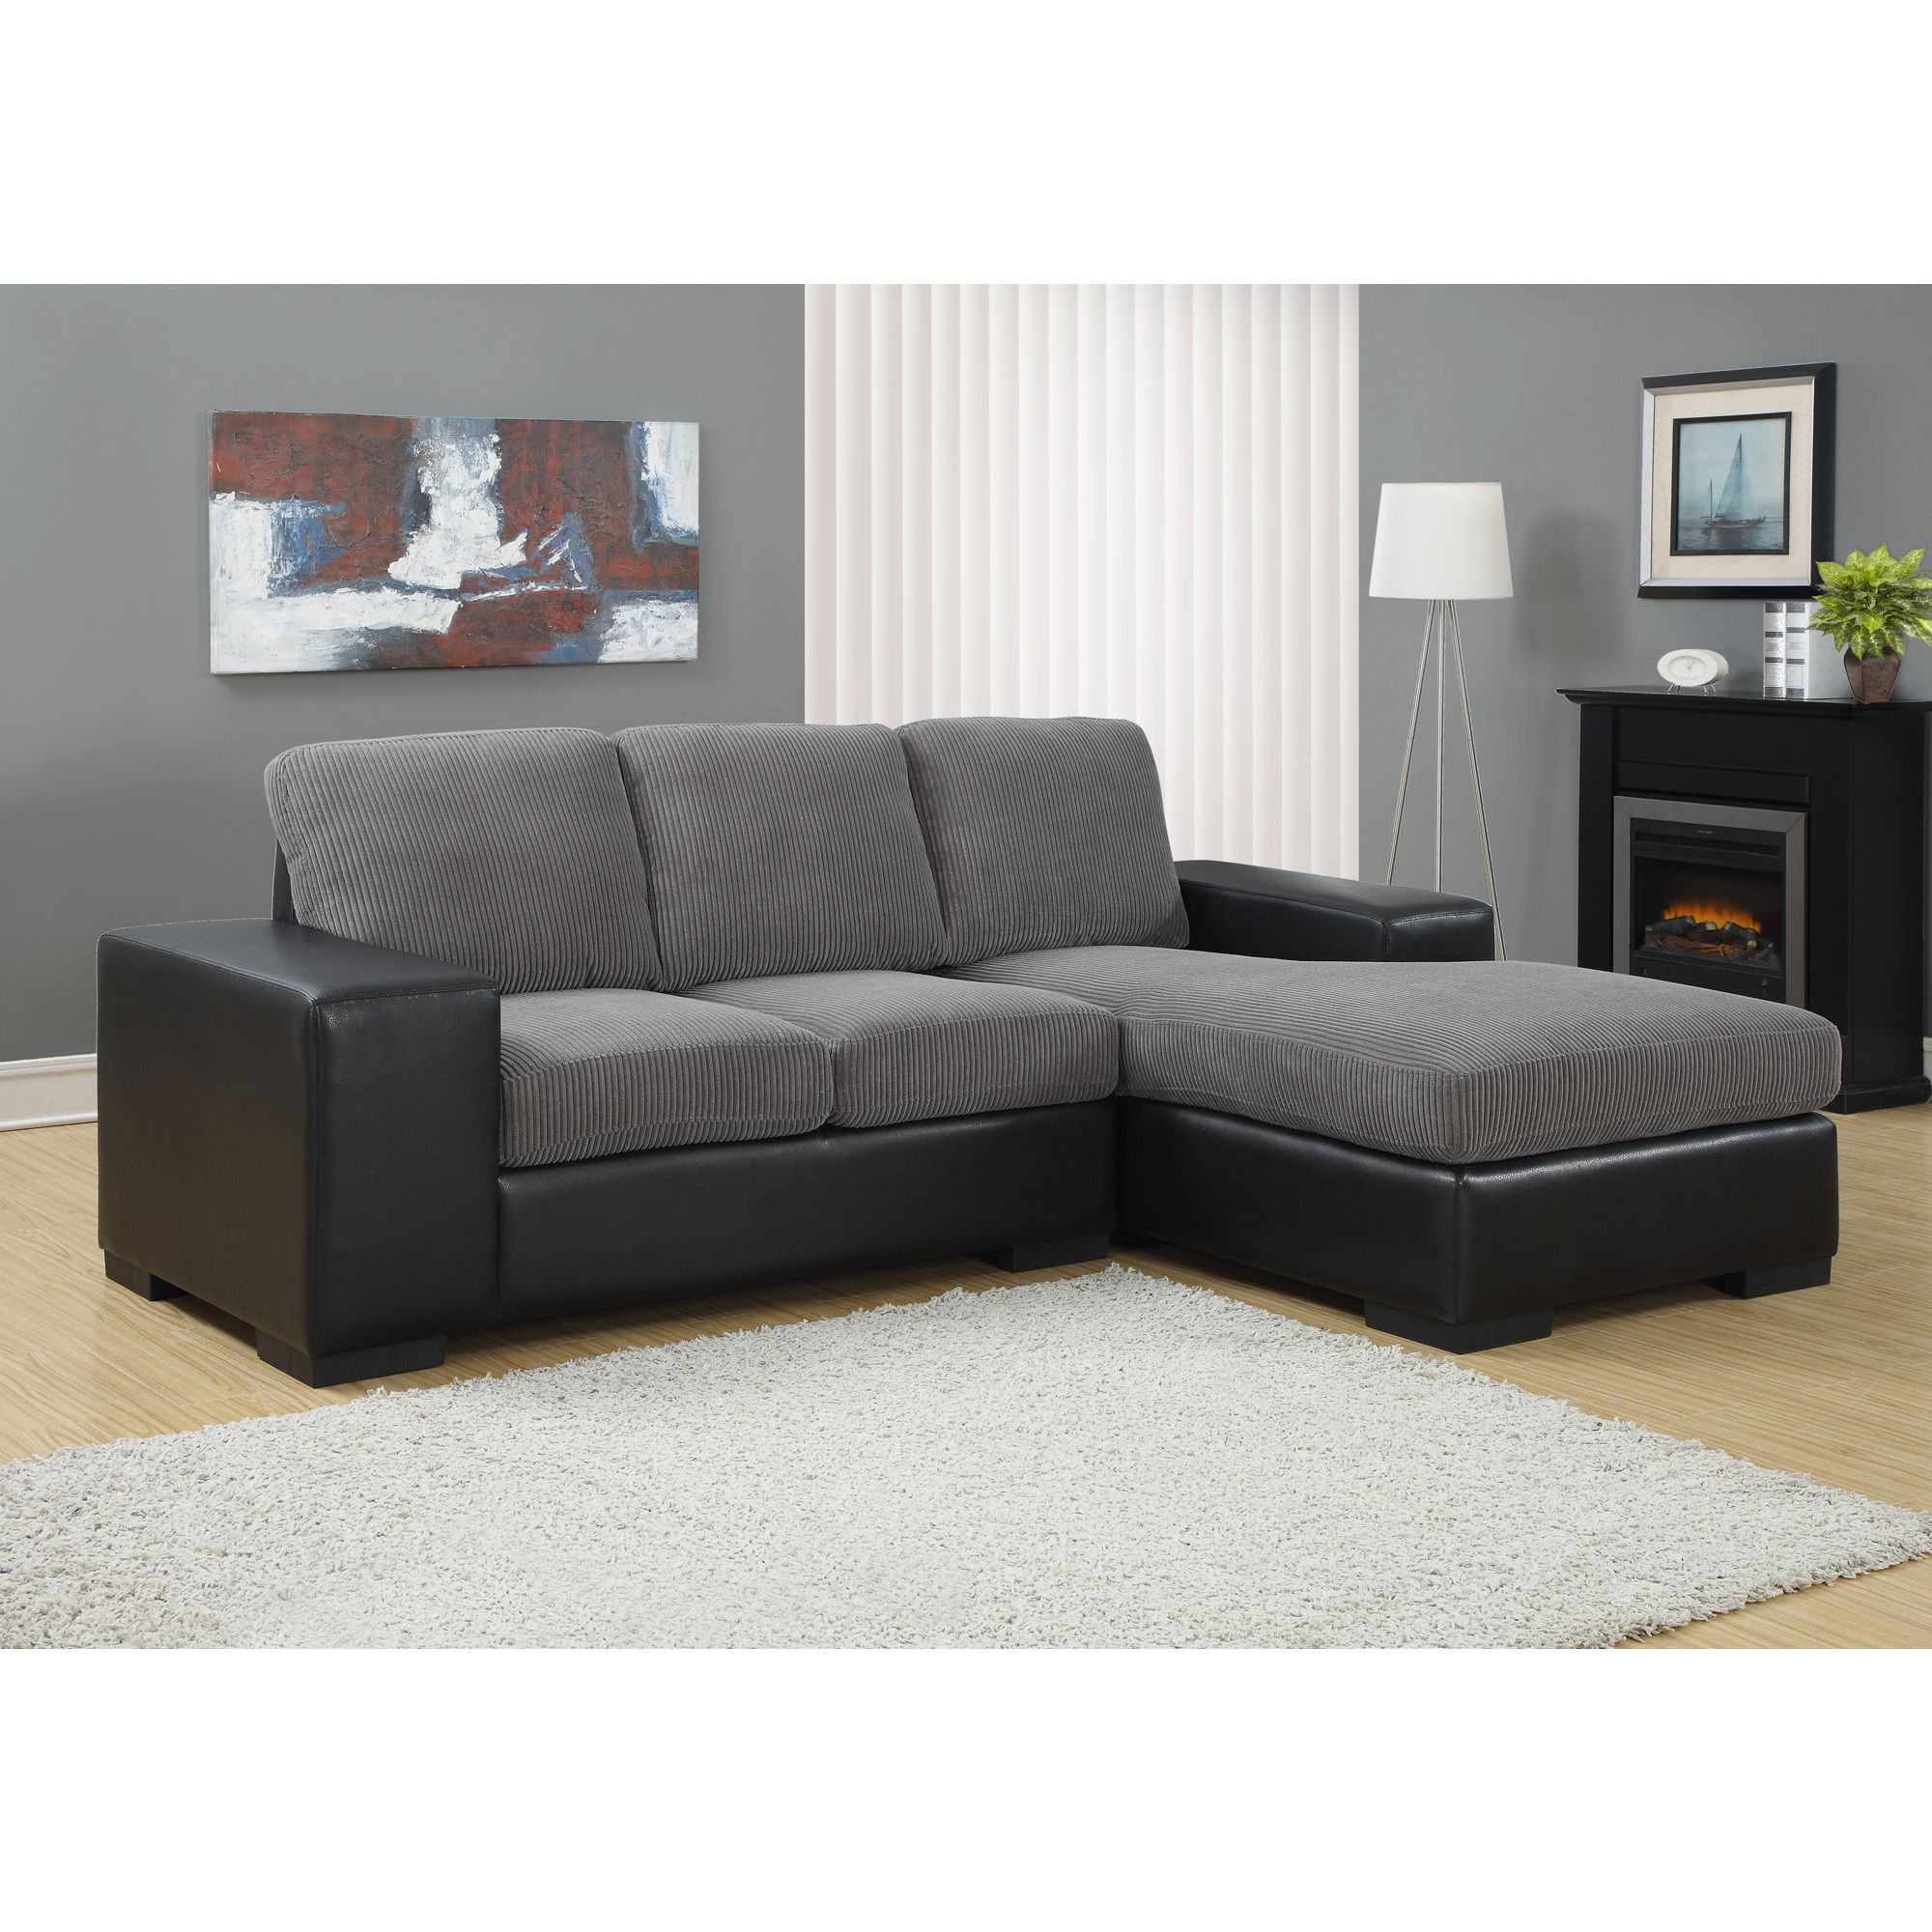 Online Shopping Bedding Furniture Electronics Jewelry Clothing More Sectional Sofa Sectional Sofa Sale Sofa Furniture